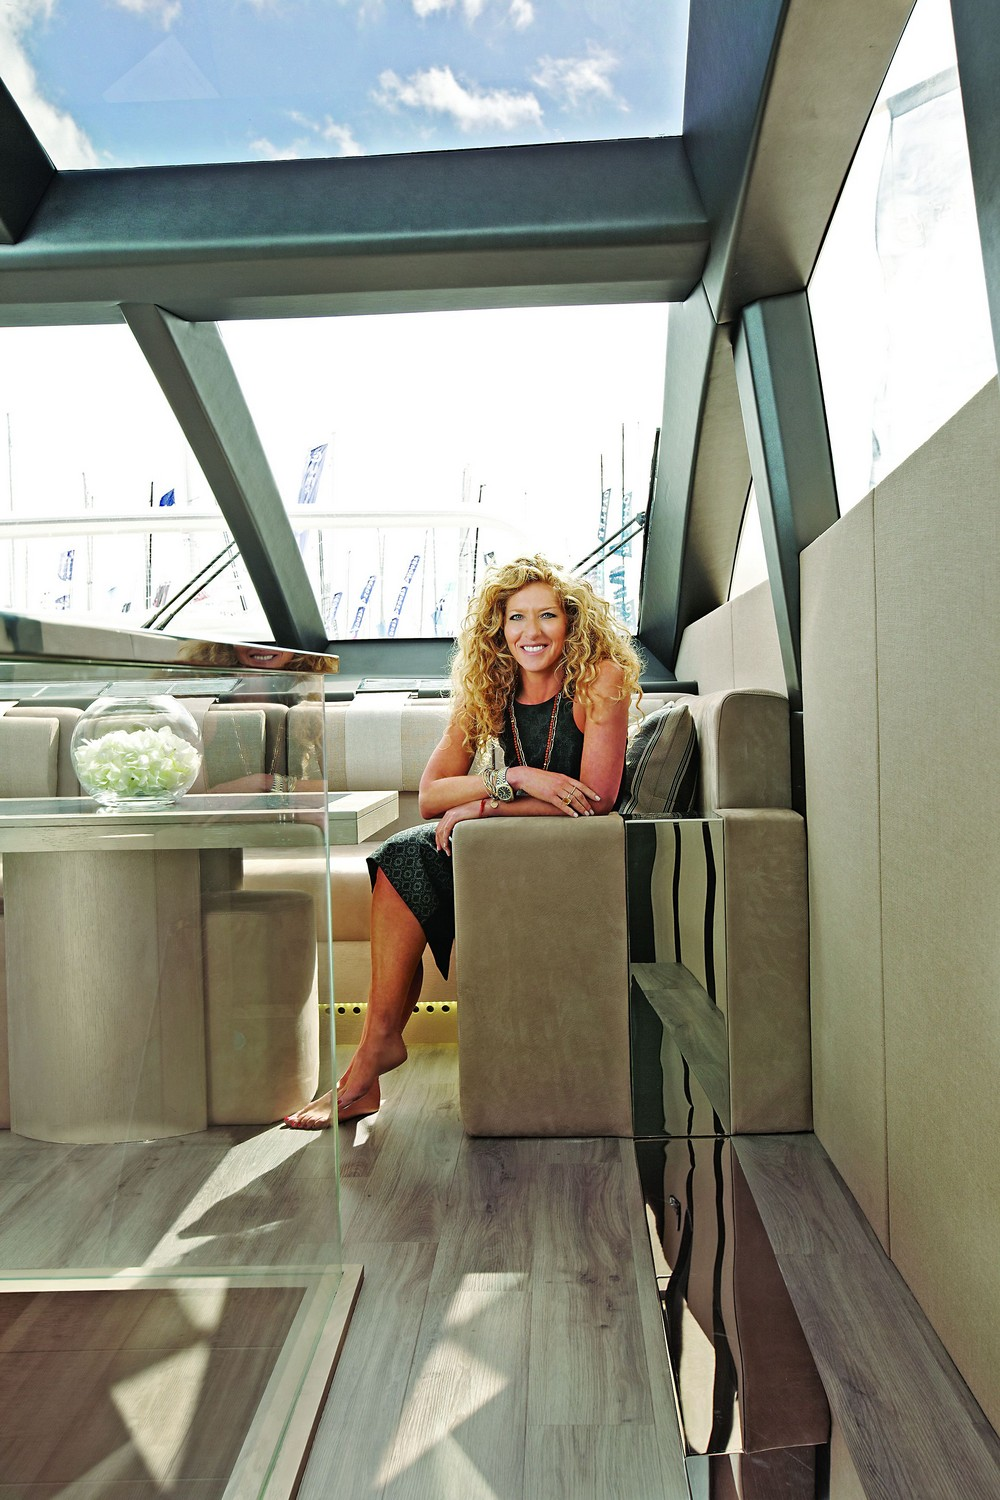 Luxury Yachts 4 Marvelous Interiors Designed by Kelly Hoppen luxury yachts Luxury Yachts: 4 Marvelous Interiors Designed by Kelly Hoppen Luxury Yachts 4 Marvelous Interiors Designed by Kelly Hoppen